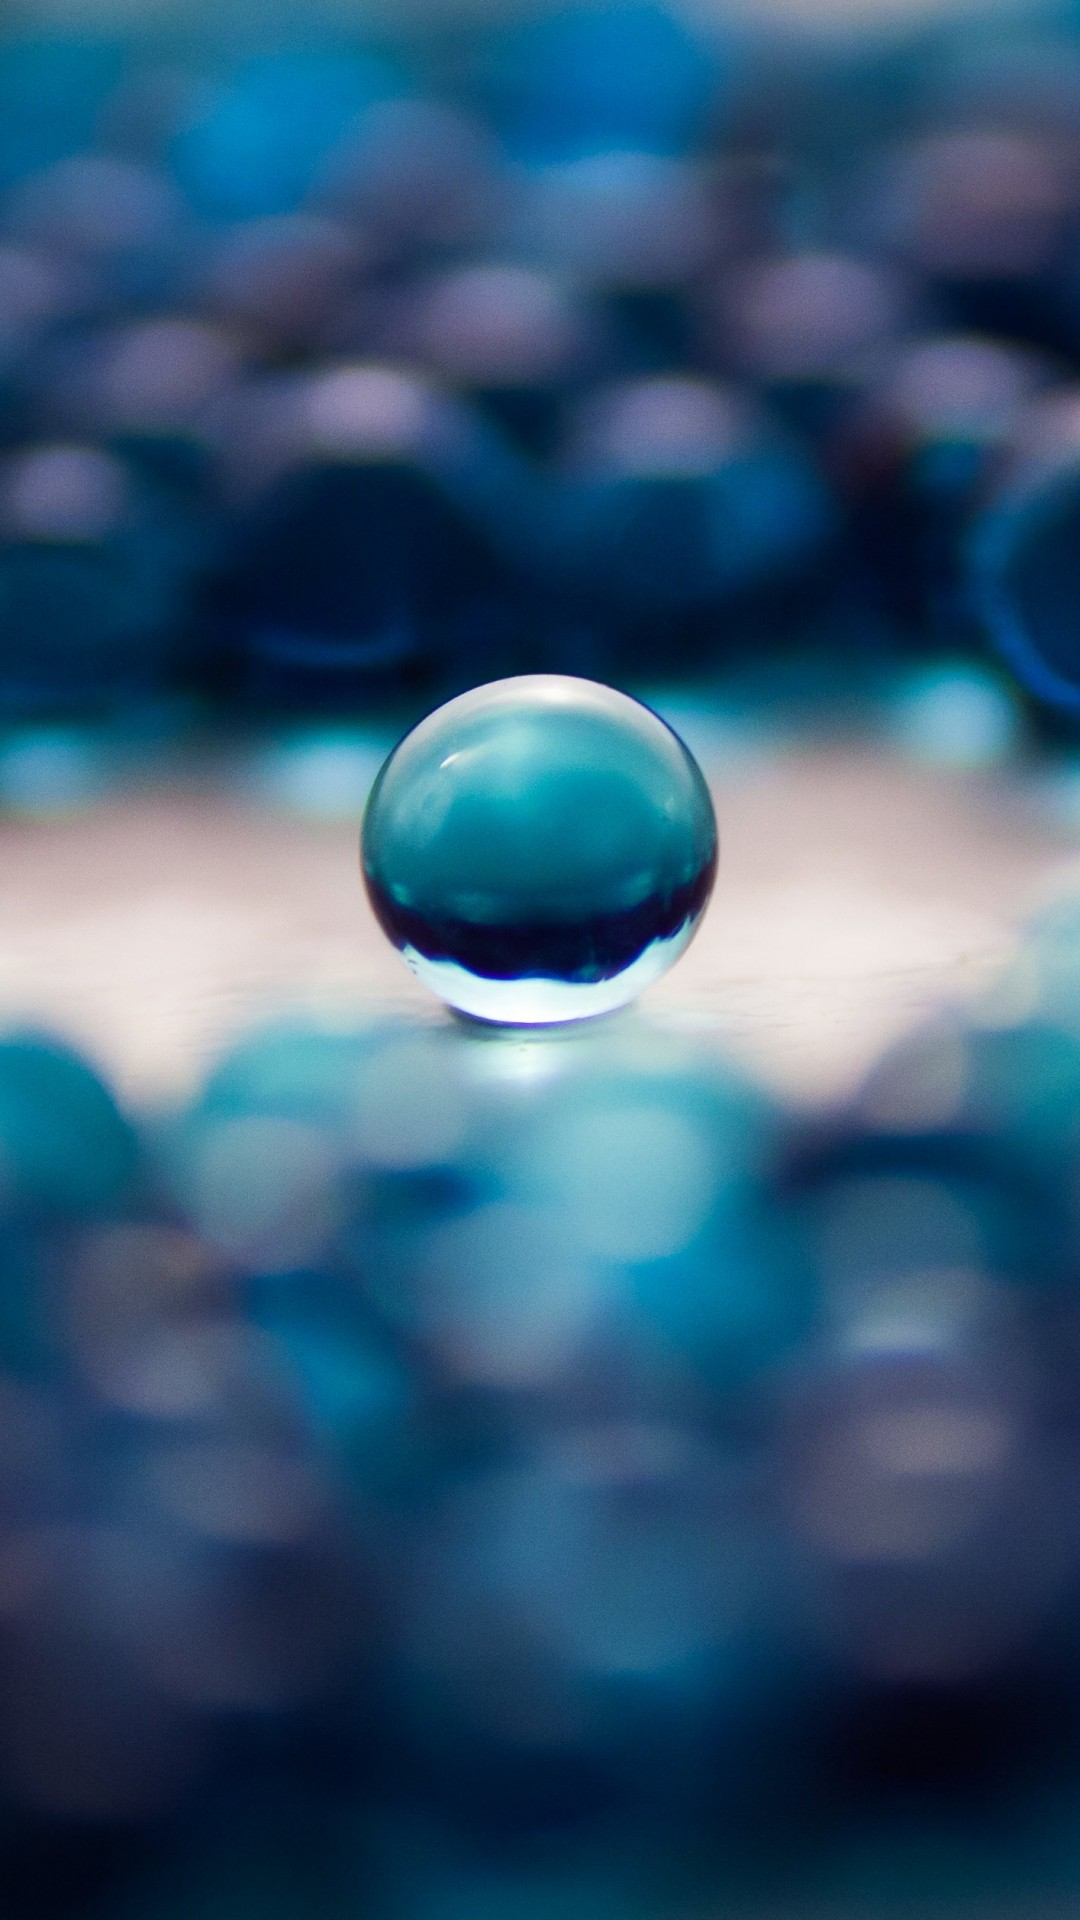 Water Balls Wallpaper for SONY Xperia Z1